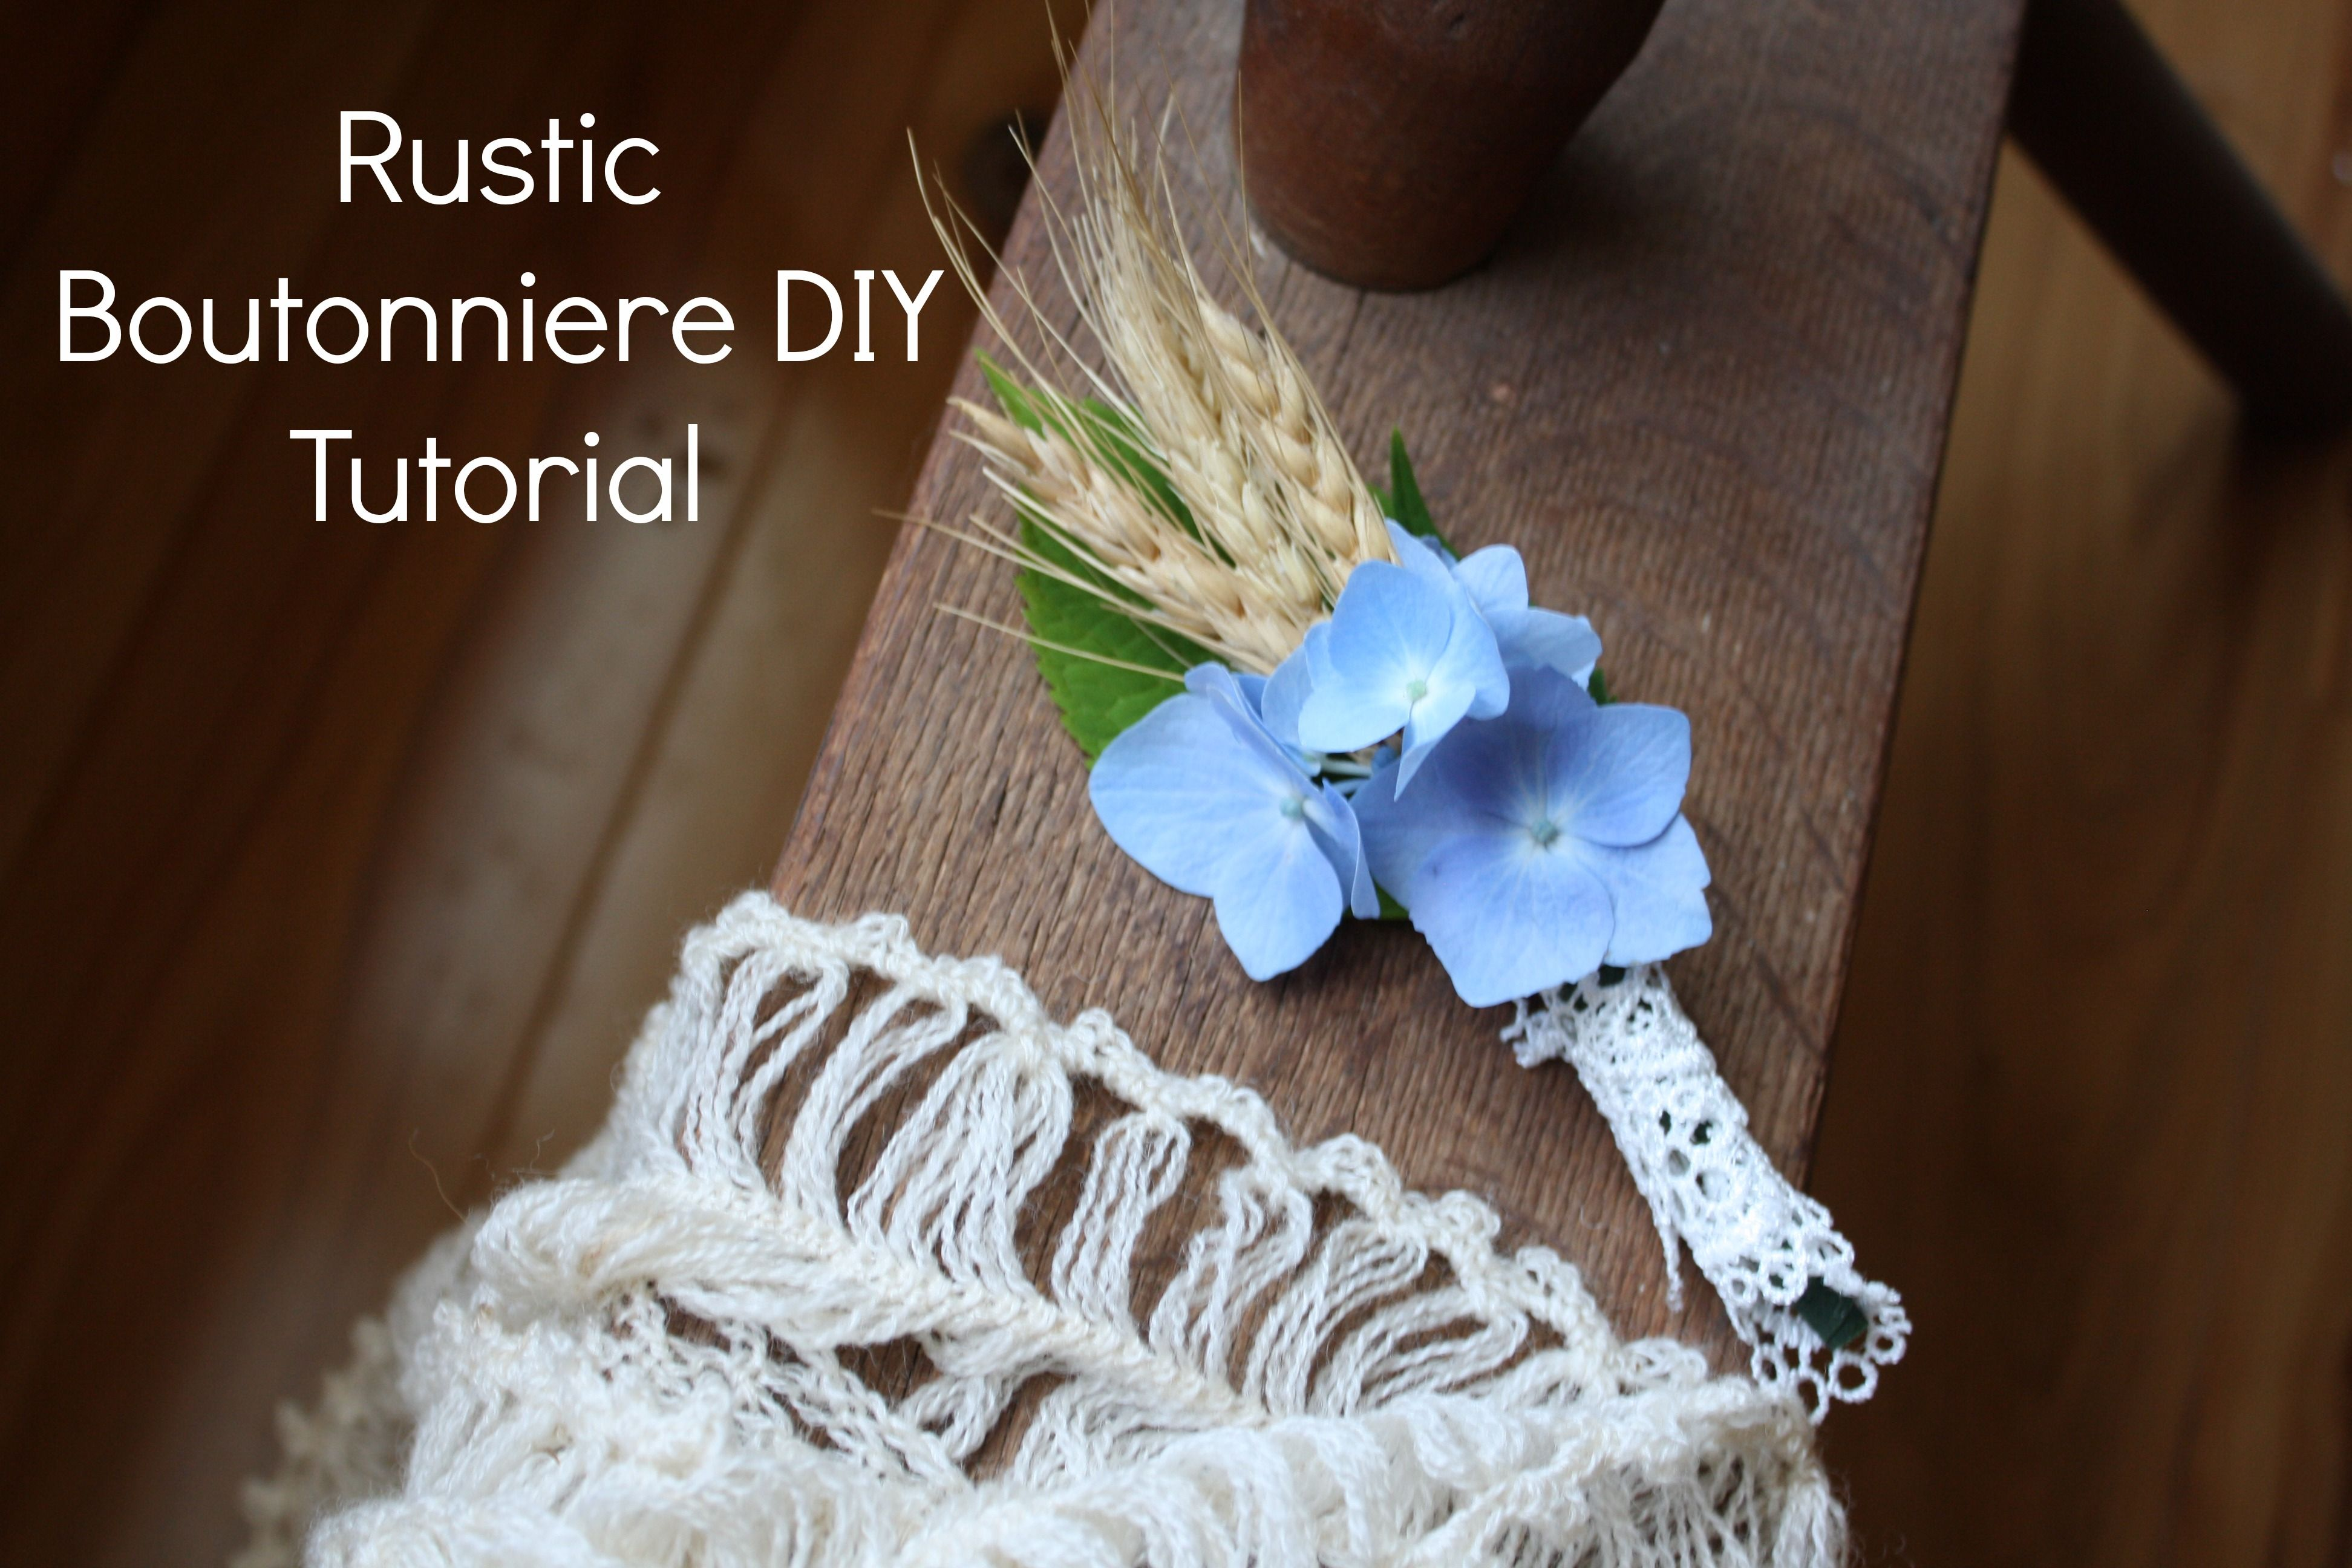 Rustic boutonniere diy tutorial boutonnieres weddings and rustic